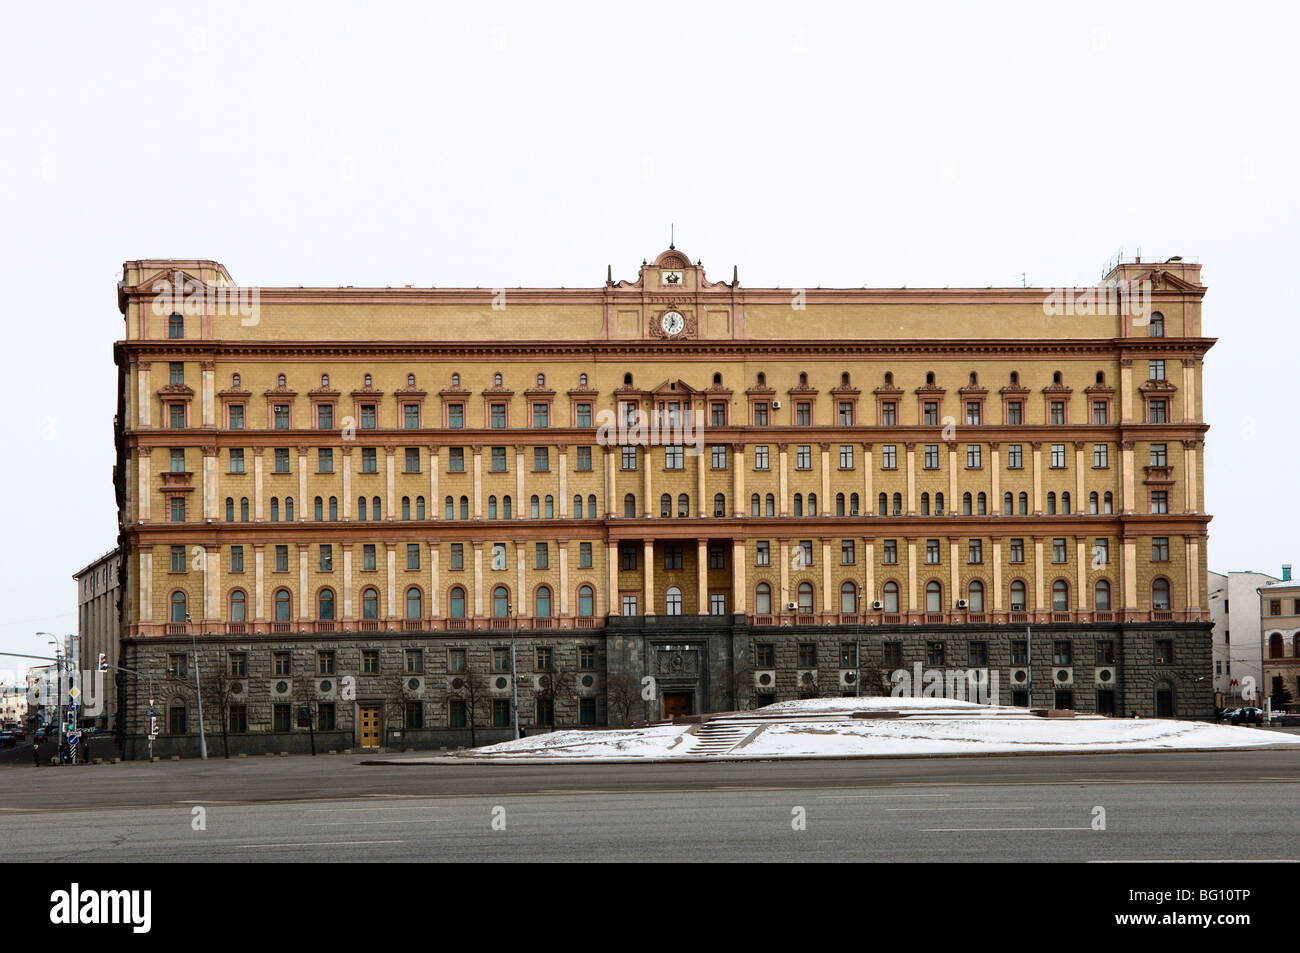 KGB Building, Lubyankskaya Square, Moscow, Russia, Europe - Stock Image